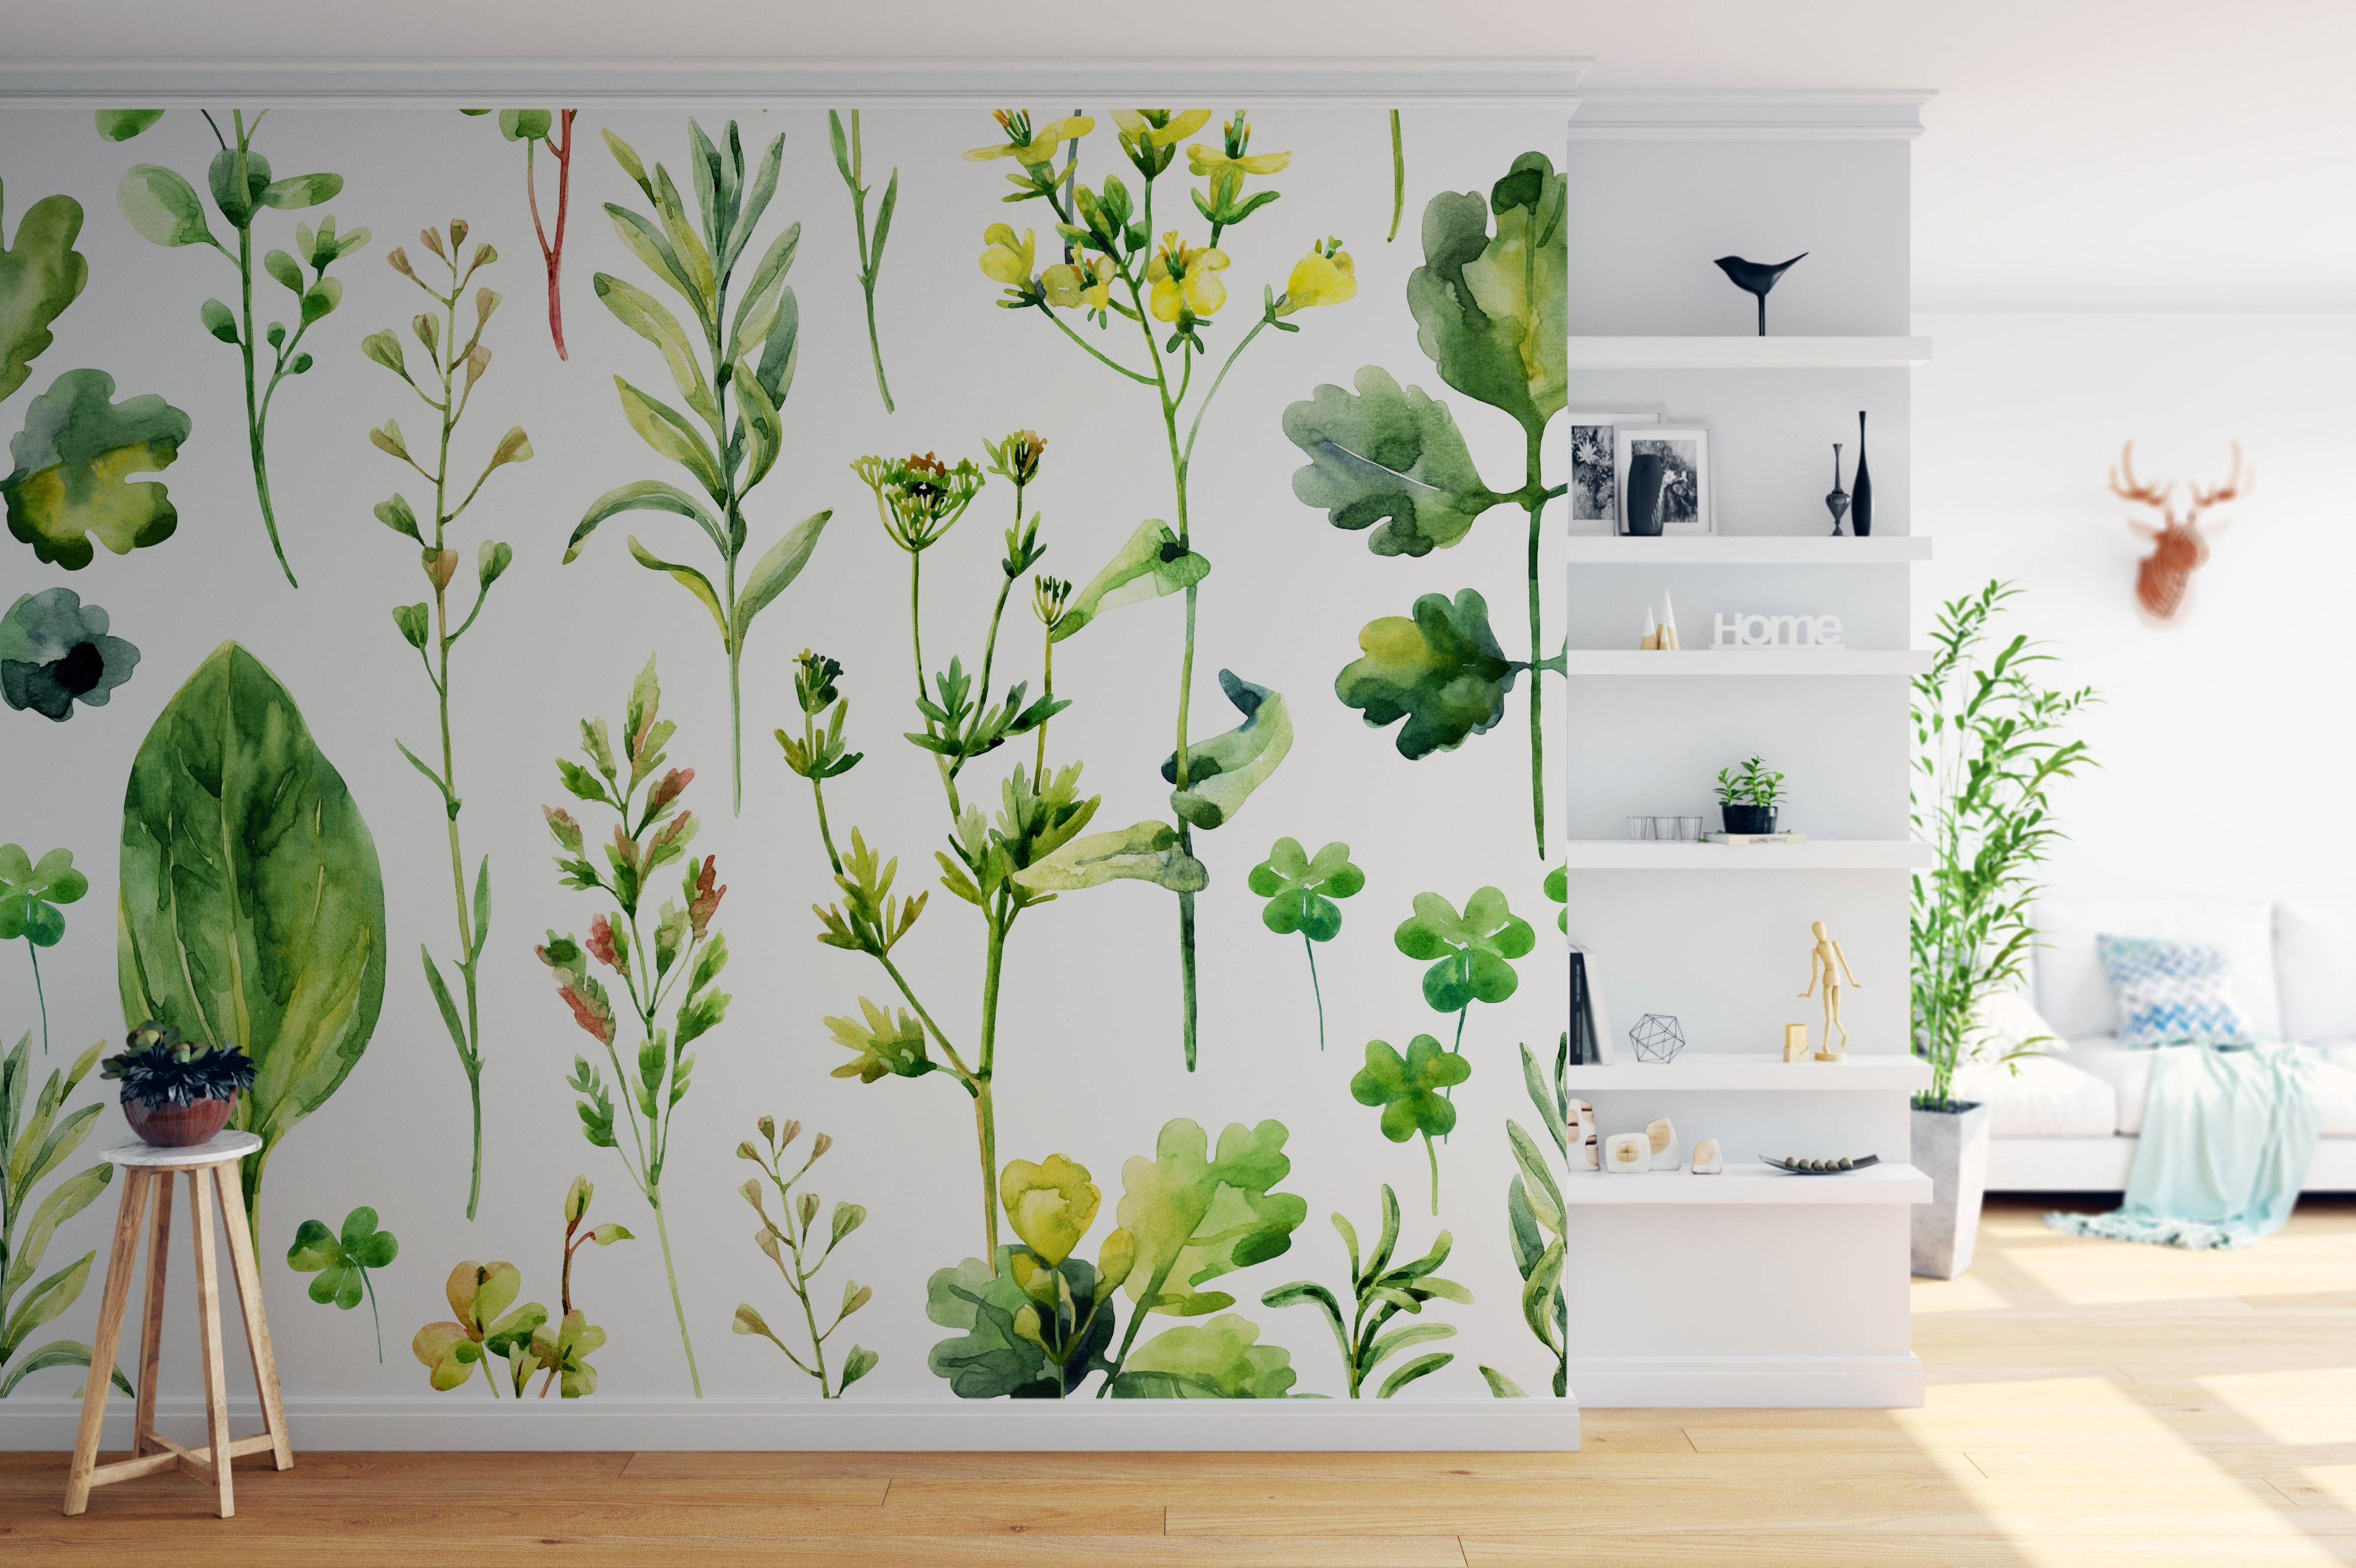 Herbarium • Scandinavian - Living room - Nature - Flowers and plants - Wall Murals ✓ 365 Day Money Back Guarantee ✓ Consulting on the Pattern Selection ✓ 100% Safe✓ Set up online!